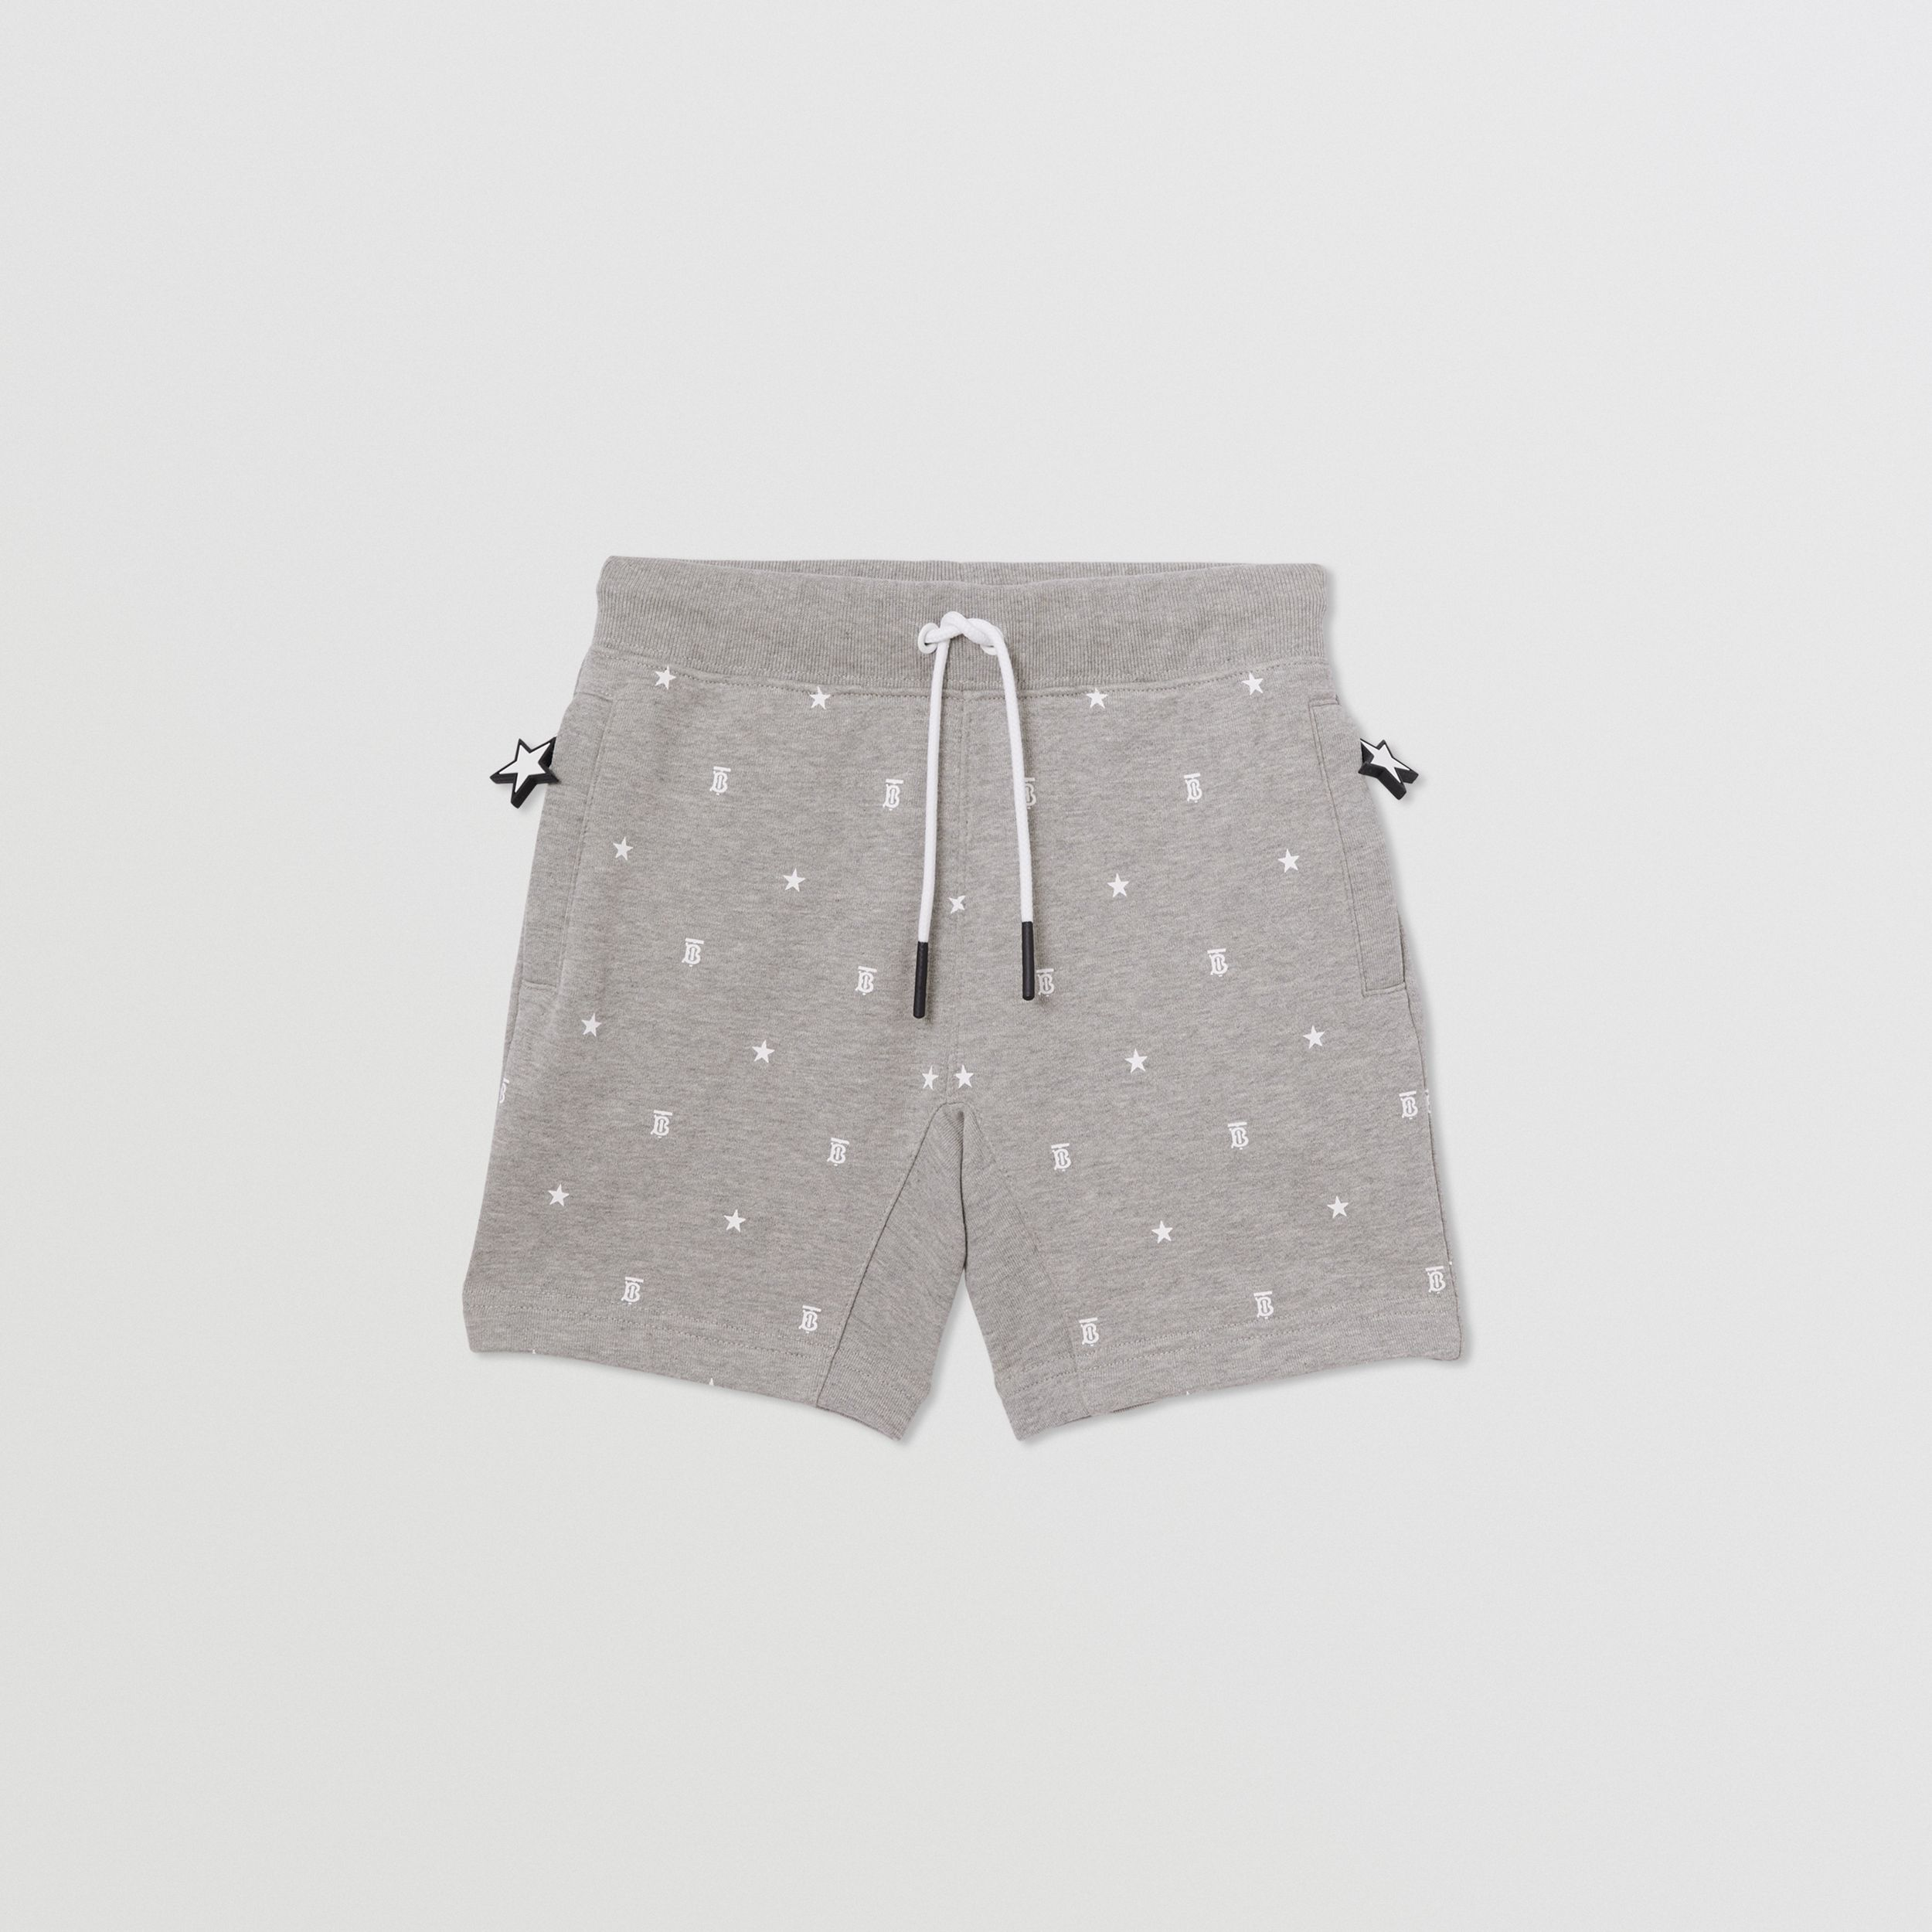 Star and Monogram Print Cotton Drawcord Shorts in Grey | Burberry United States - 1